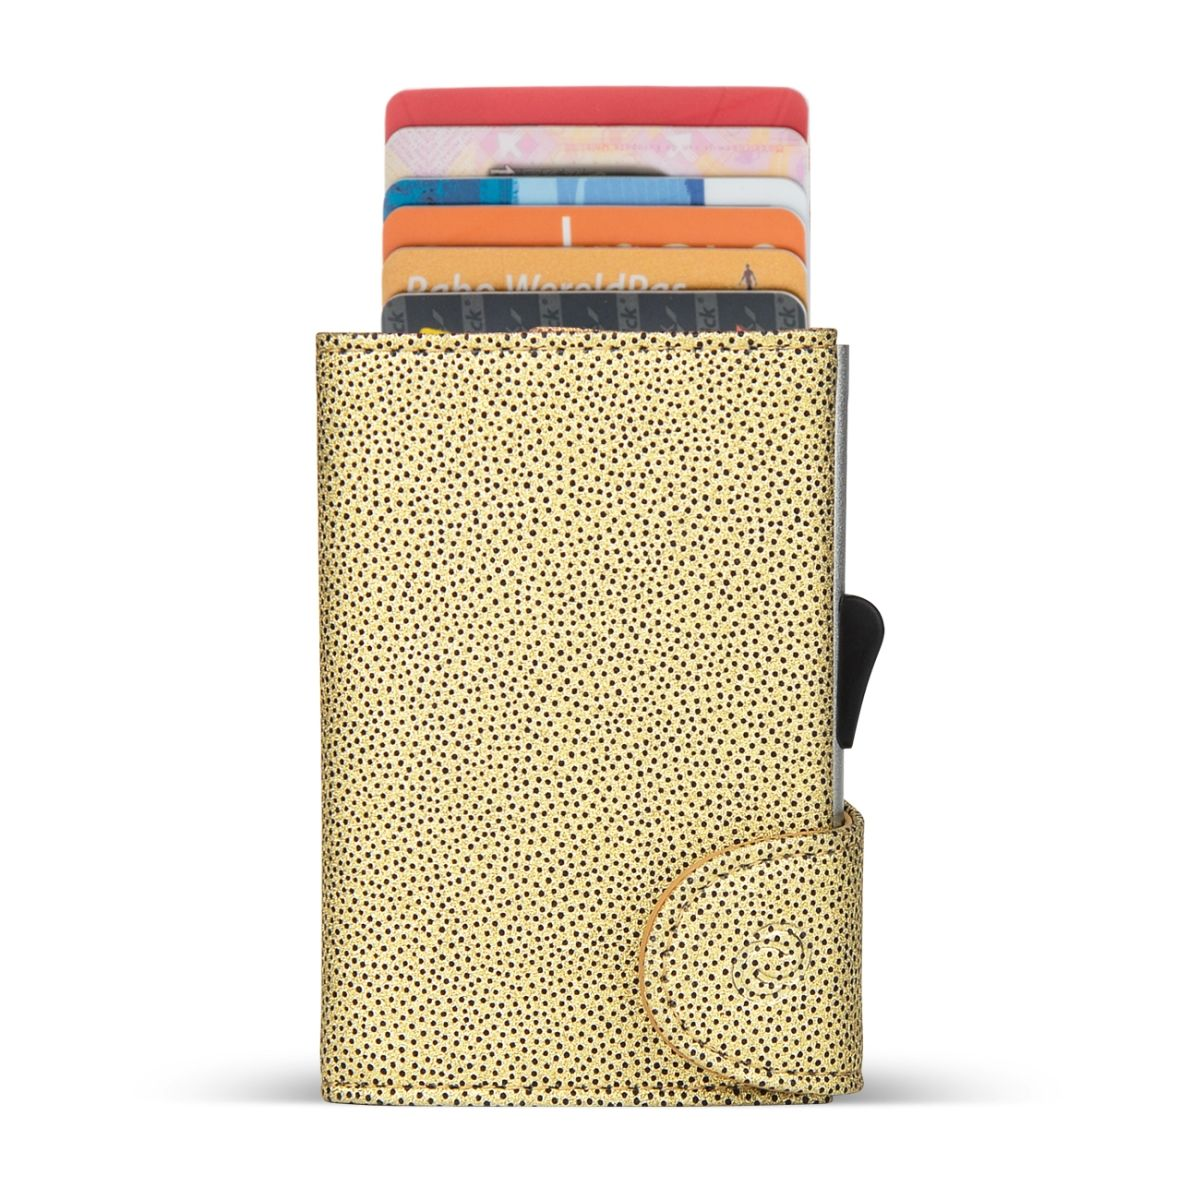 C-Secure Aluminum Card Holder with Genuine Leather - Fashion Gold